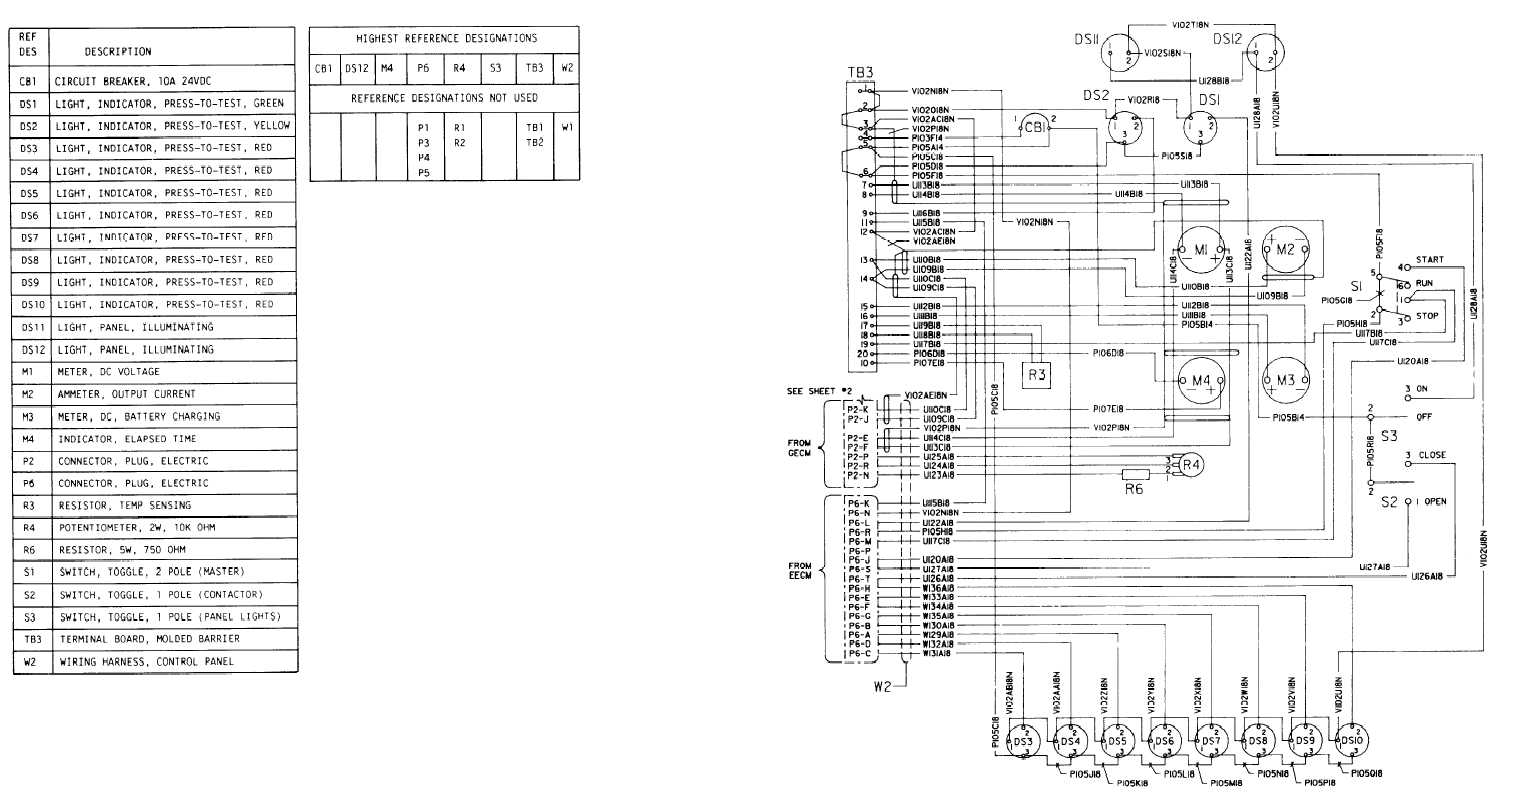 TM 5 6115 612 12_301_1 fo 4 control panel wiring diagram control panel wiring diagram at creativeand.co